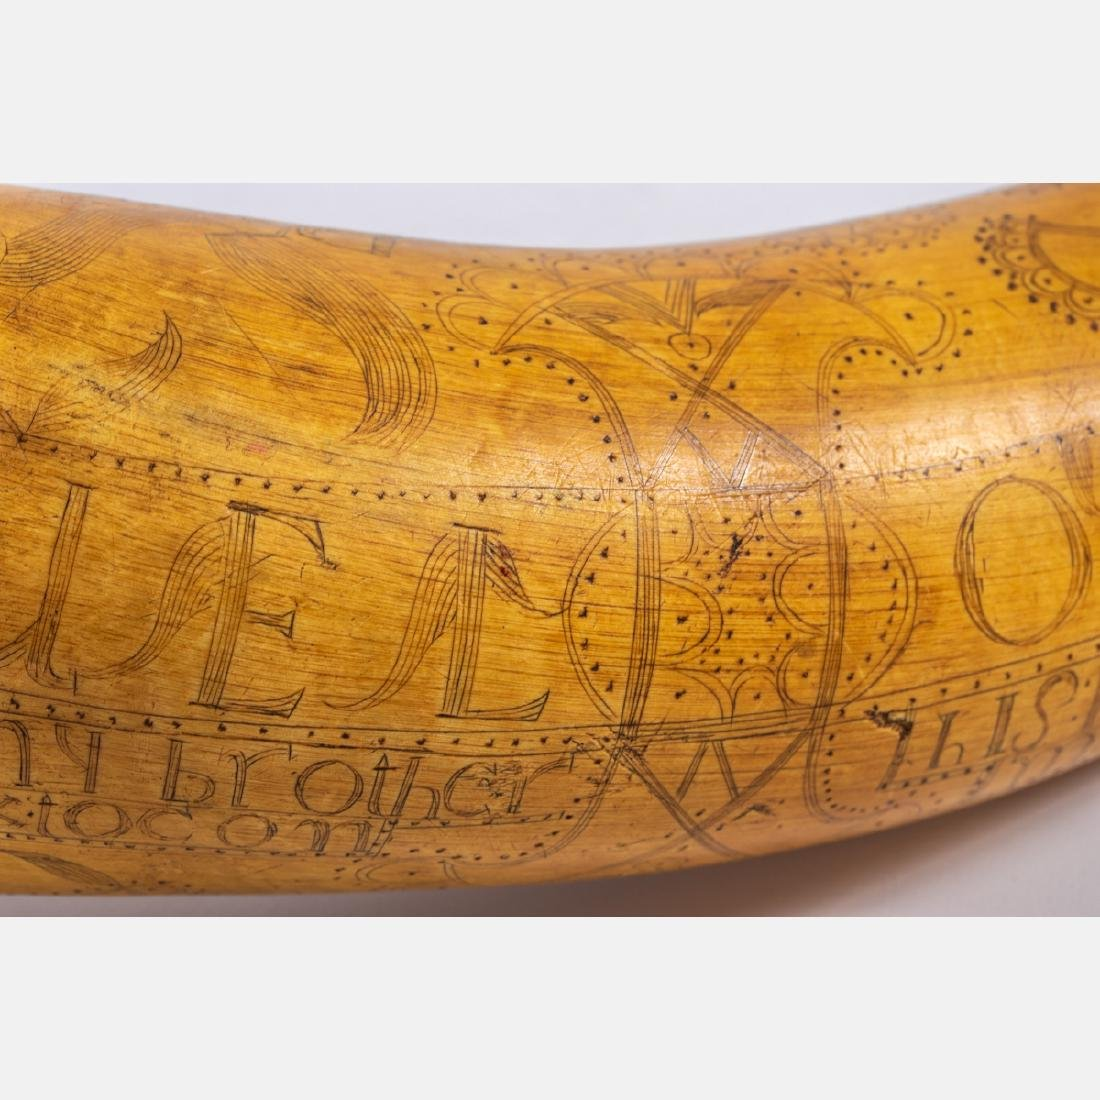 An Engraved French and Indian War Period Powder Horn, - 8